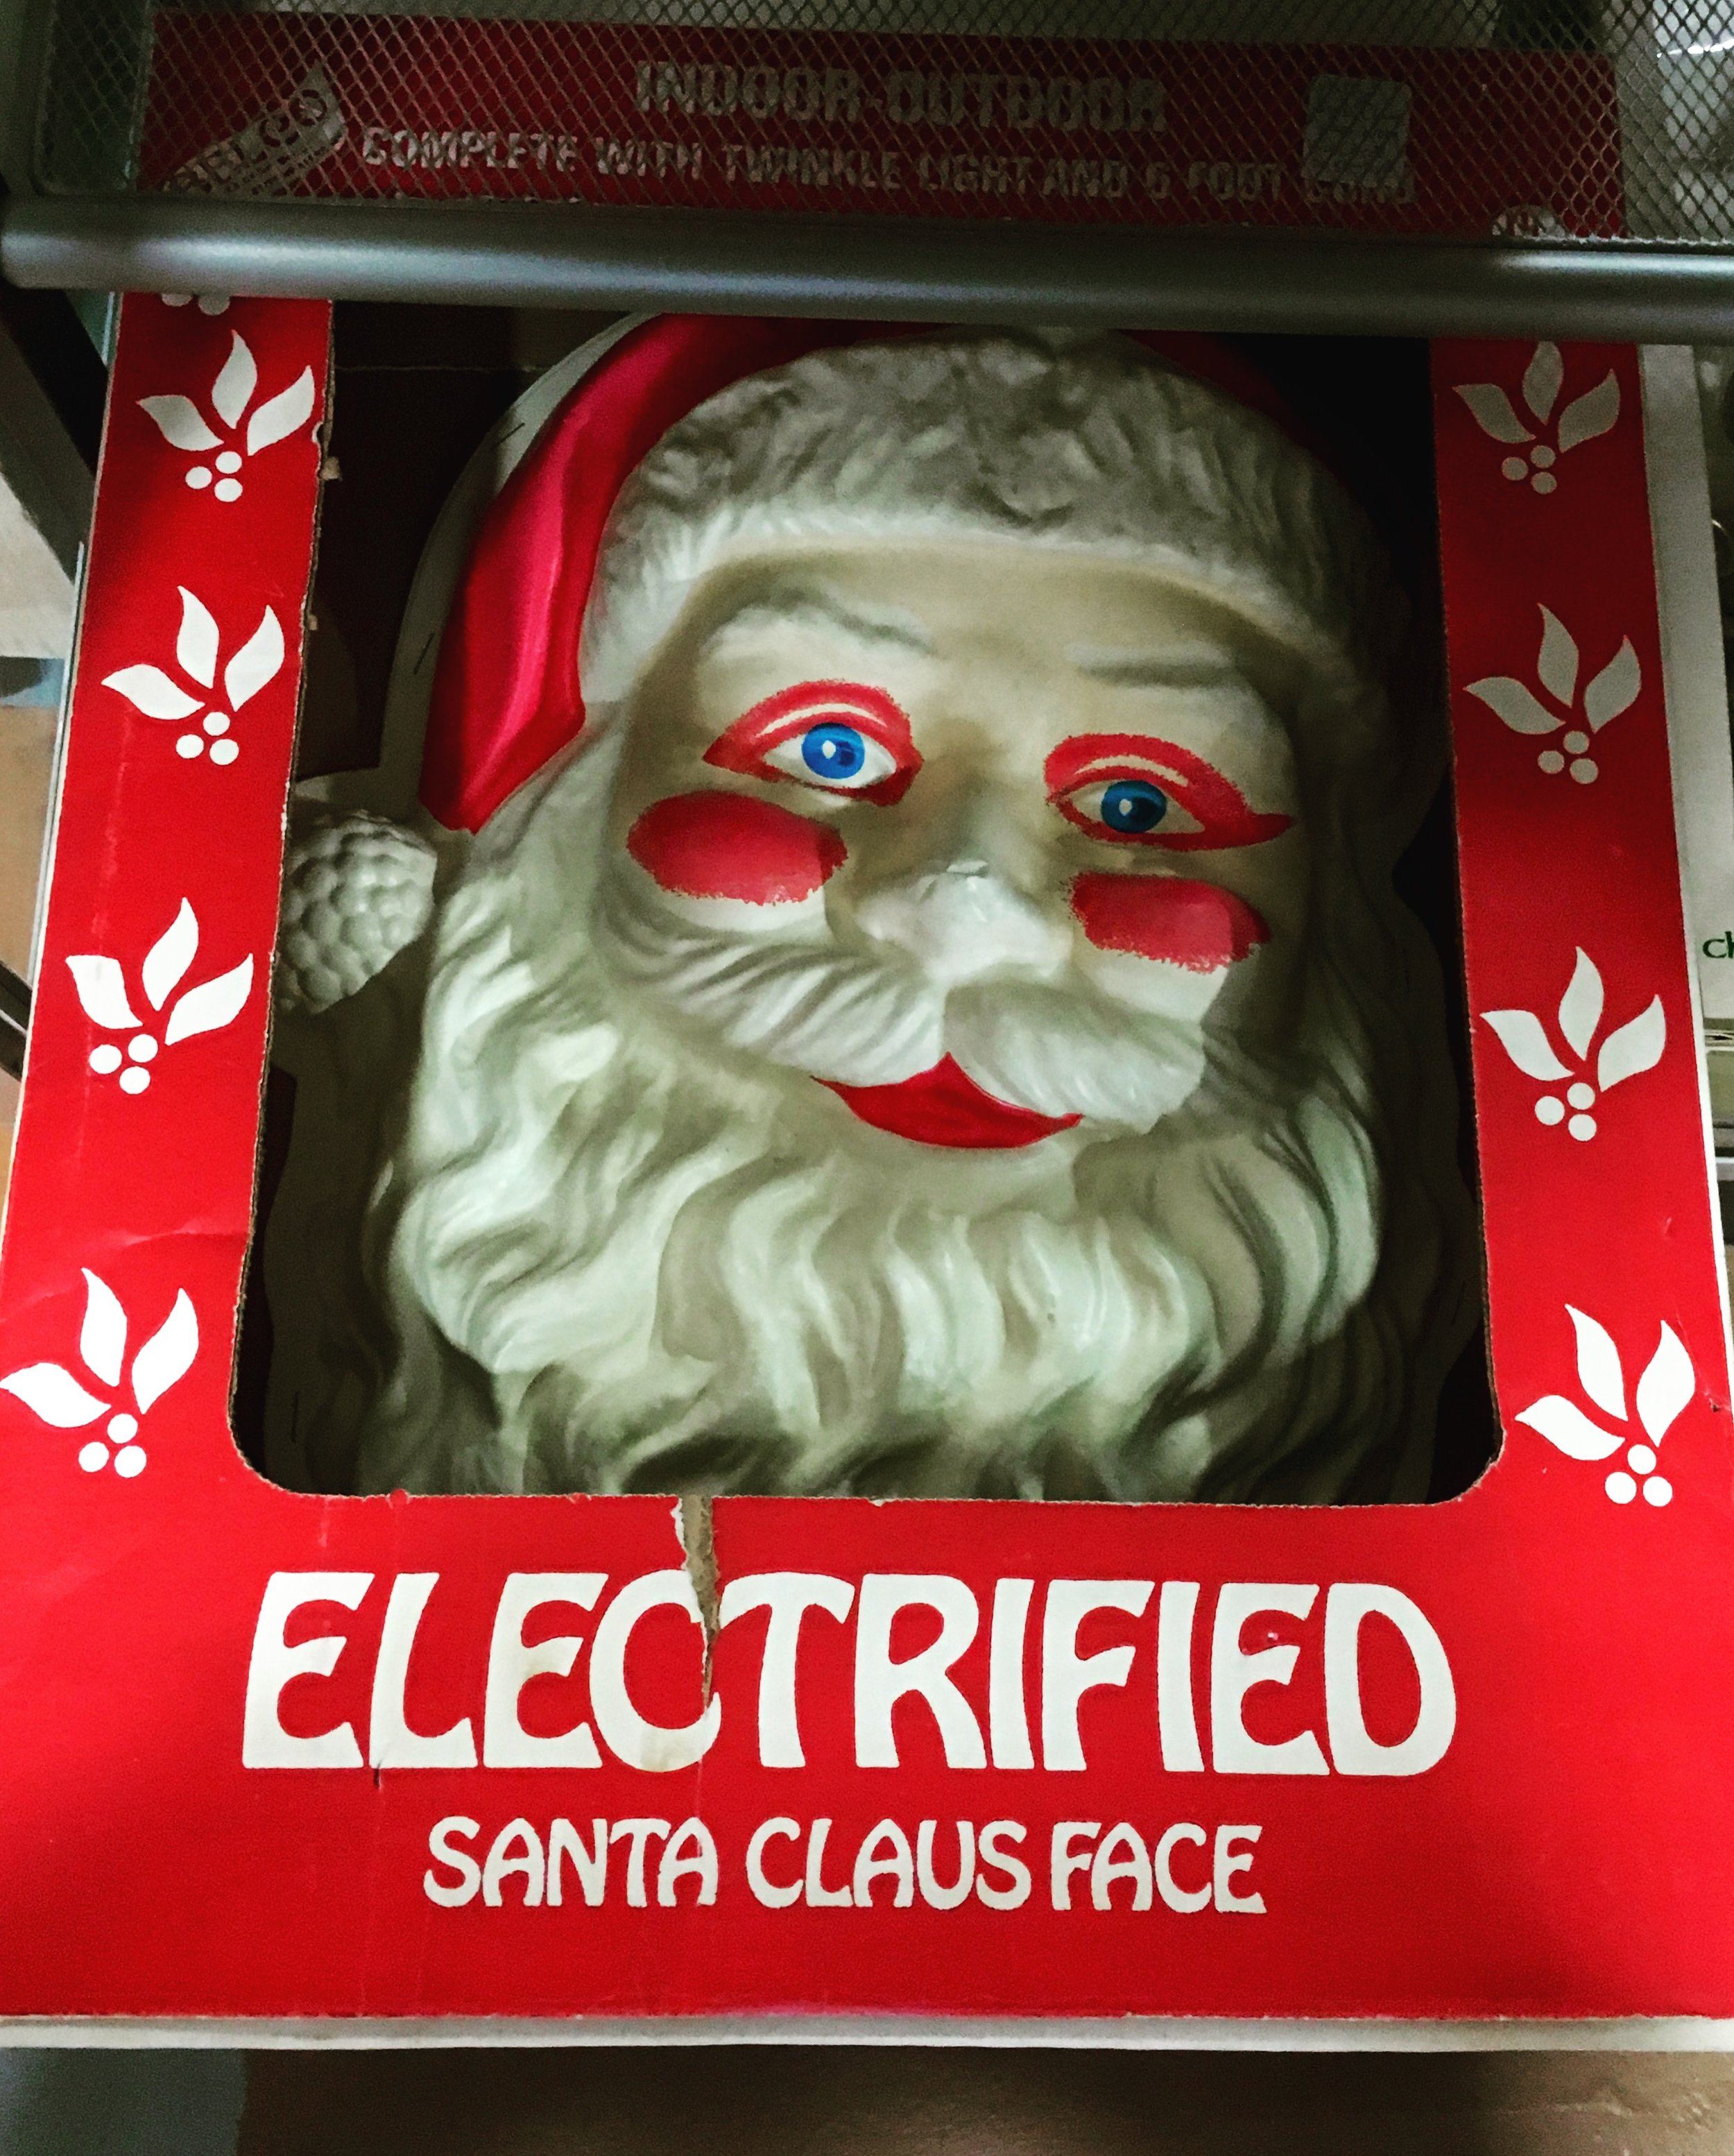 Nothing rings in the holiday cheer like an anemic Santa with blood-red eyeshadow, lipstick and rosacea who's just waiting to electrocute you.